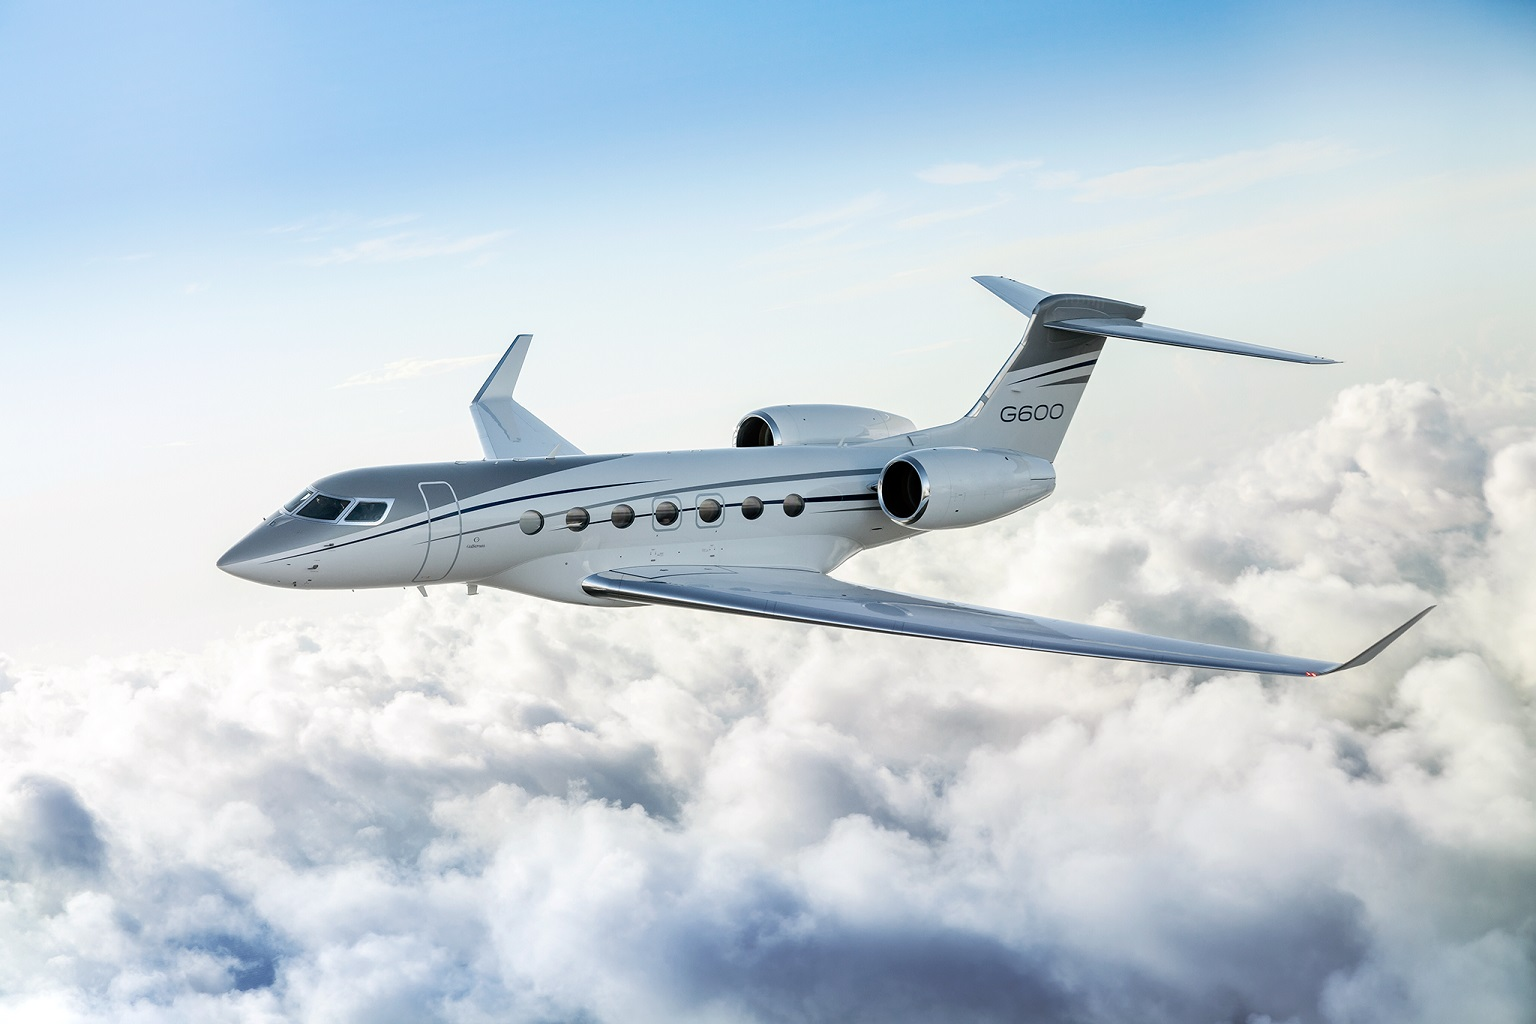 Gulfstream G600 receives European Union Aviation Safety Agency approval